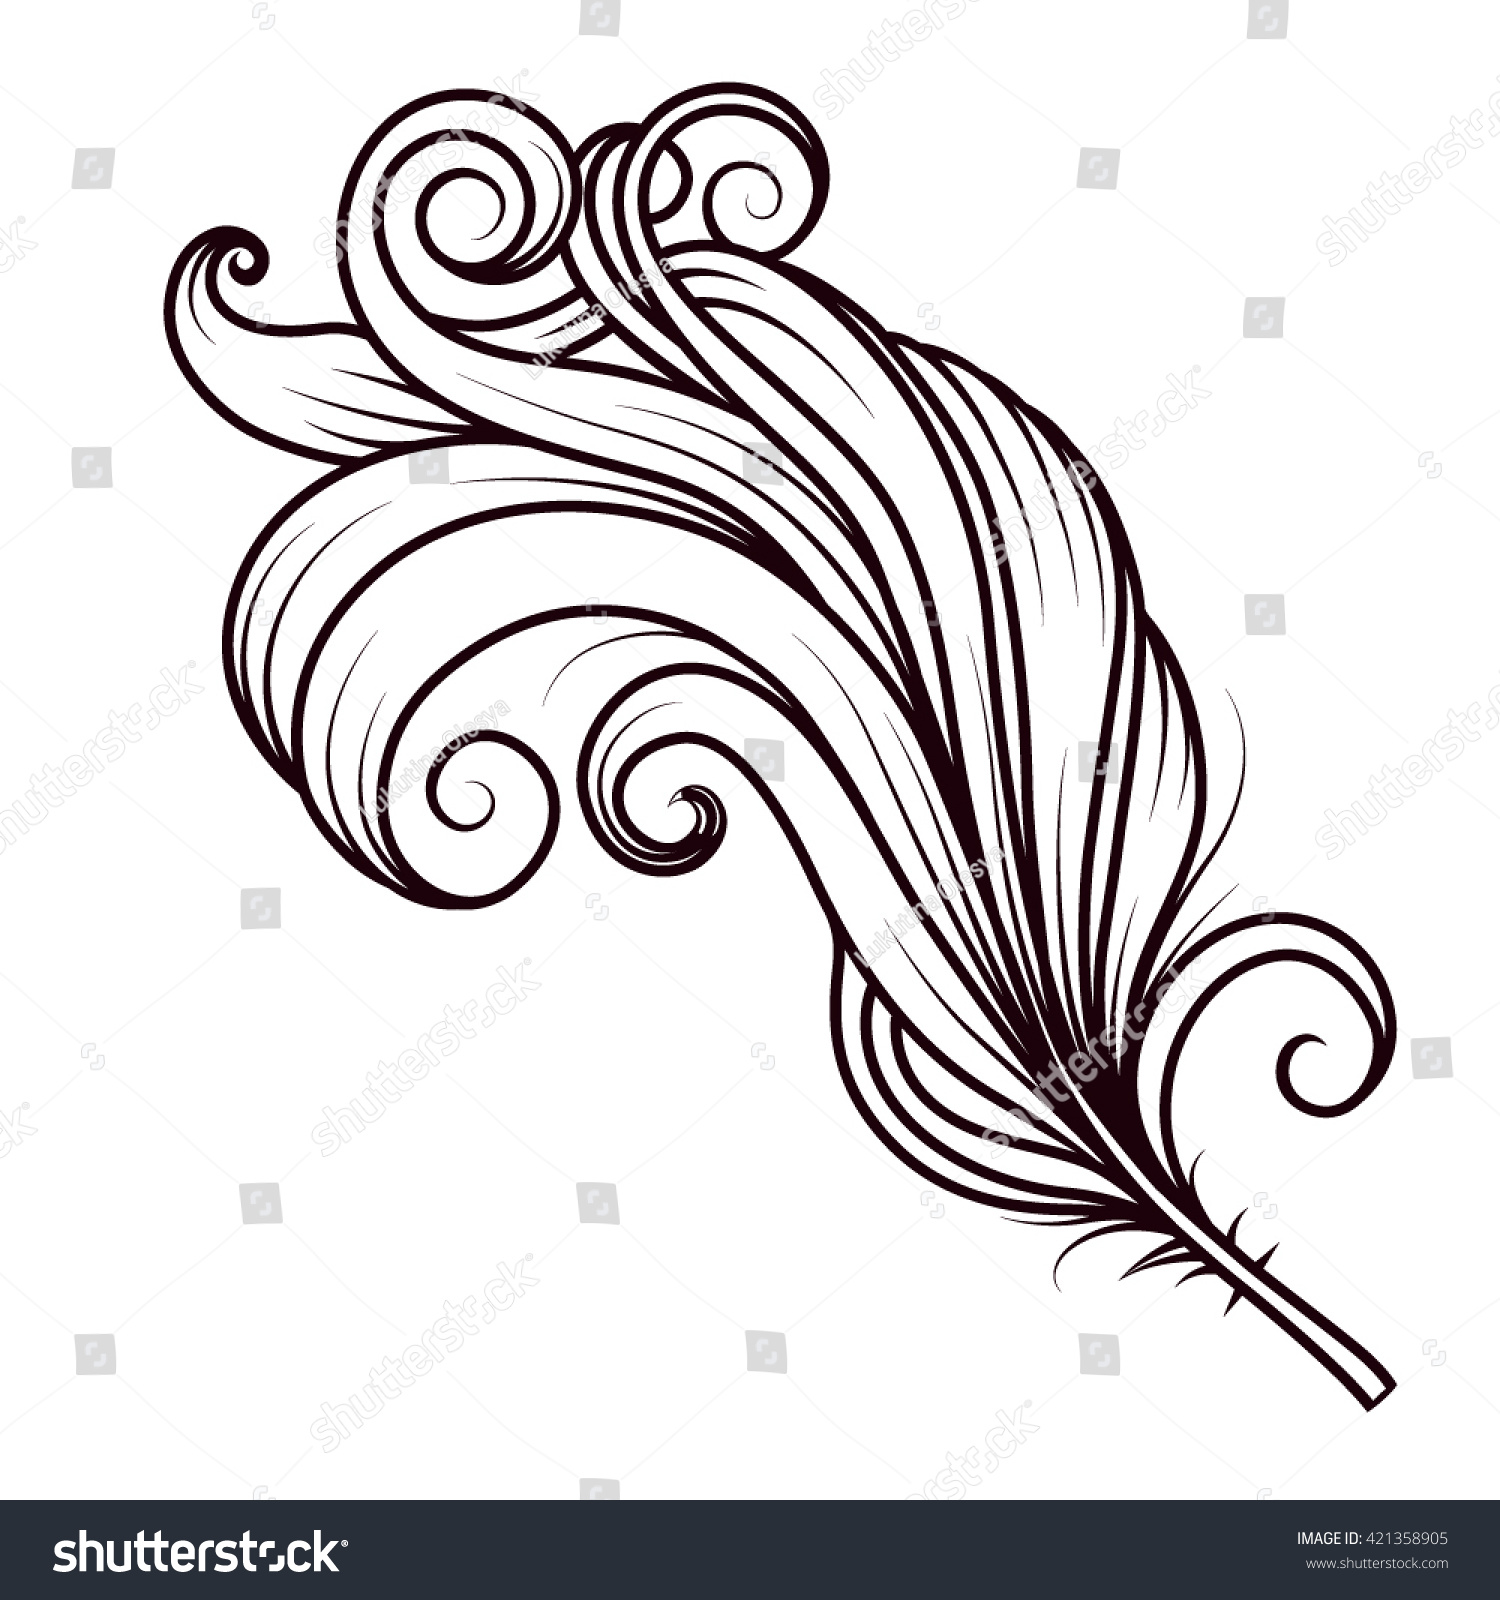 Vector Drawing Lines Html : White decorative lines